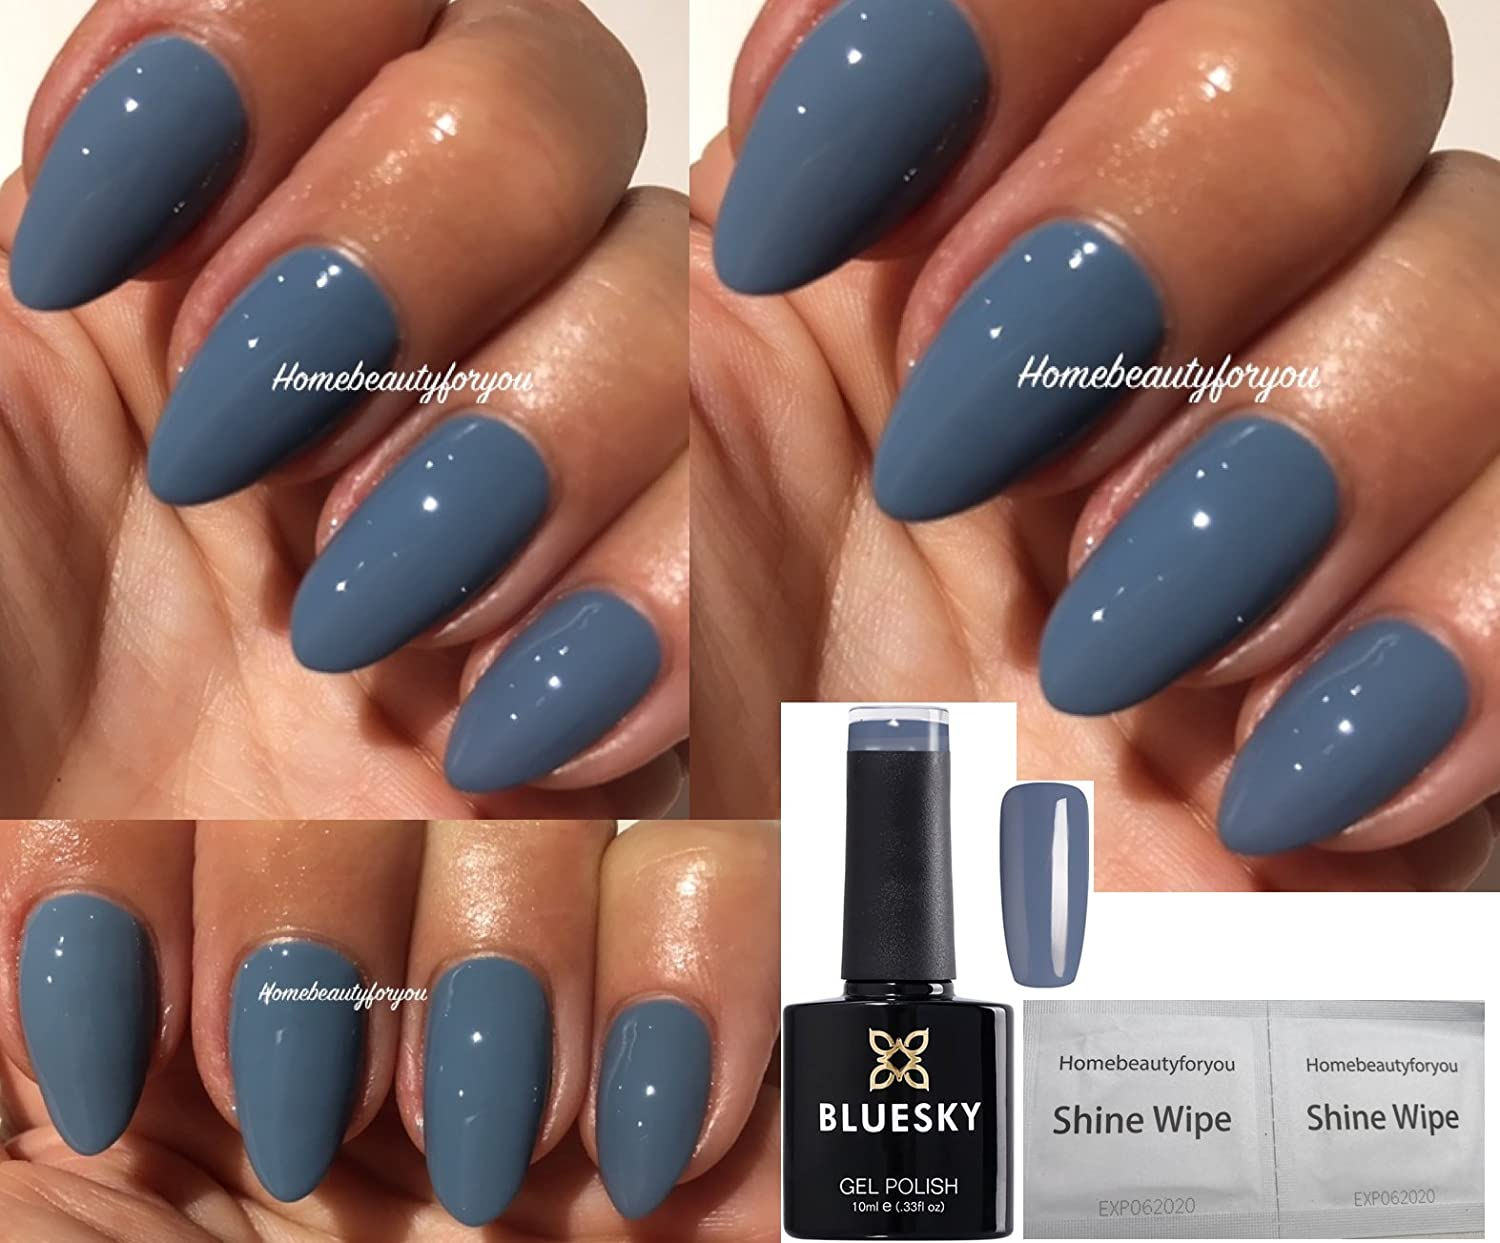 Bluesky 63927 Autumn Winter Blue Grey Nail Gel Polish UV LED Soak Off PLUS 2 HOMEBEAUTYFORYOU Shine Wipes LTD